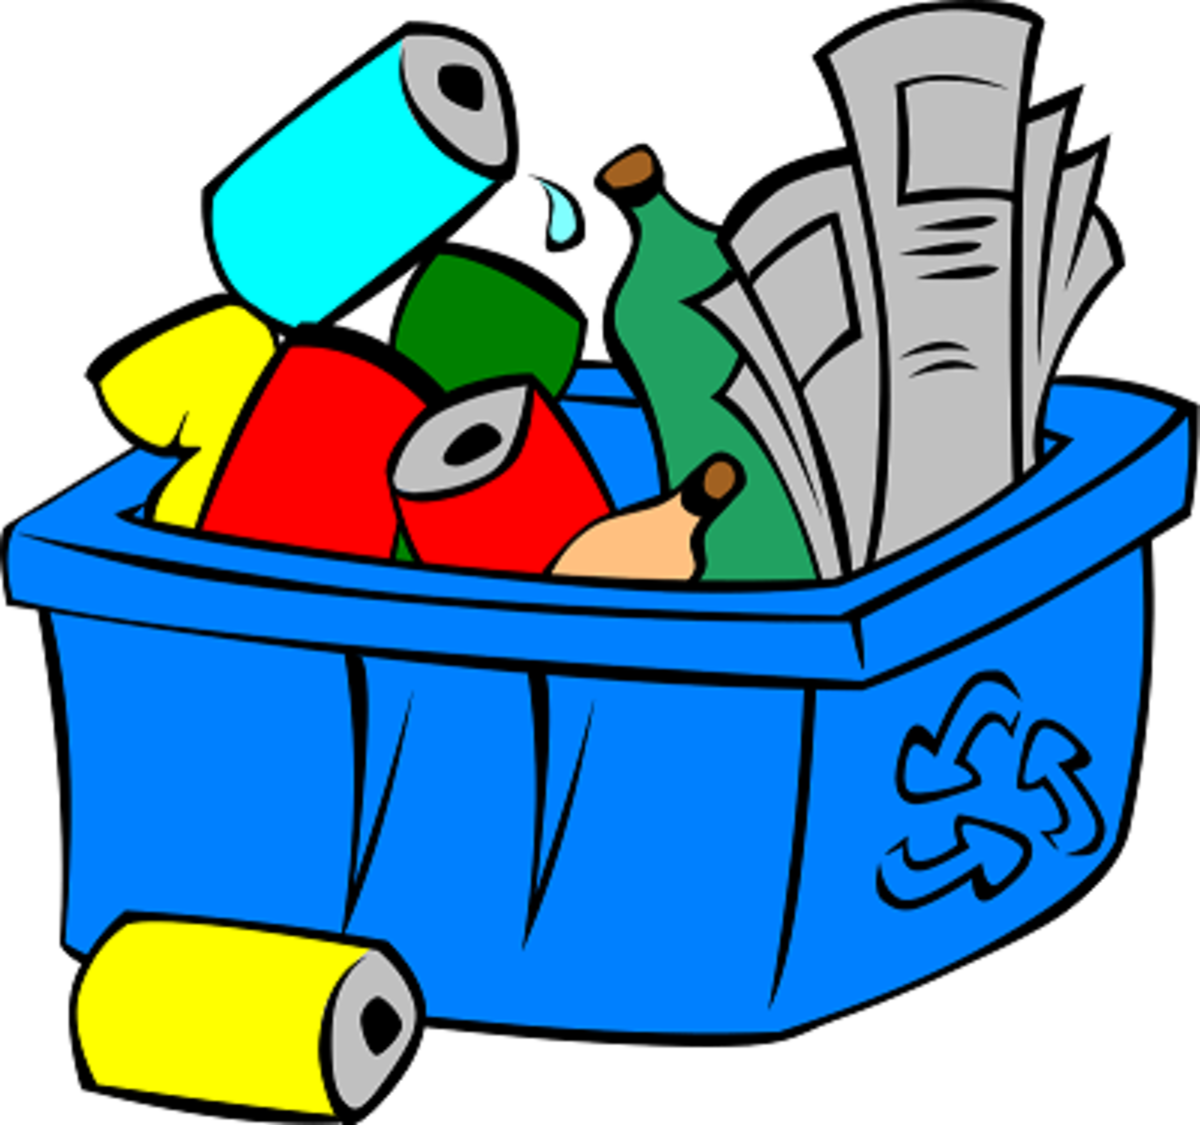 Recycle Bin Earth Day Clip Art